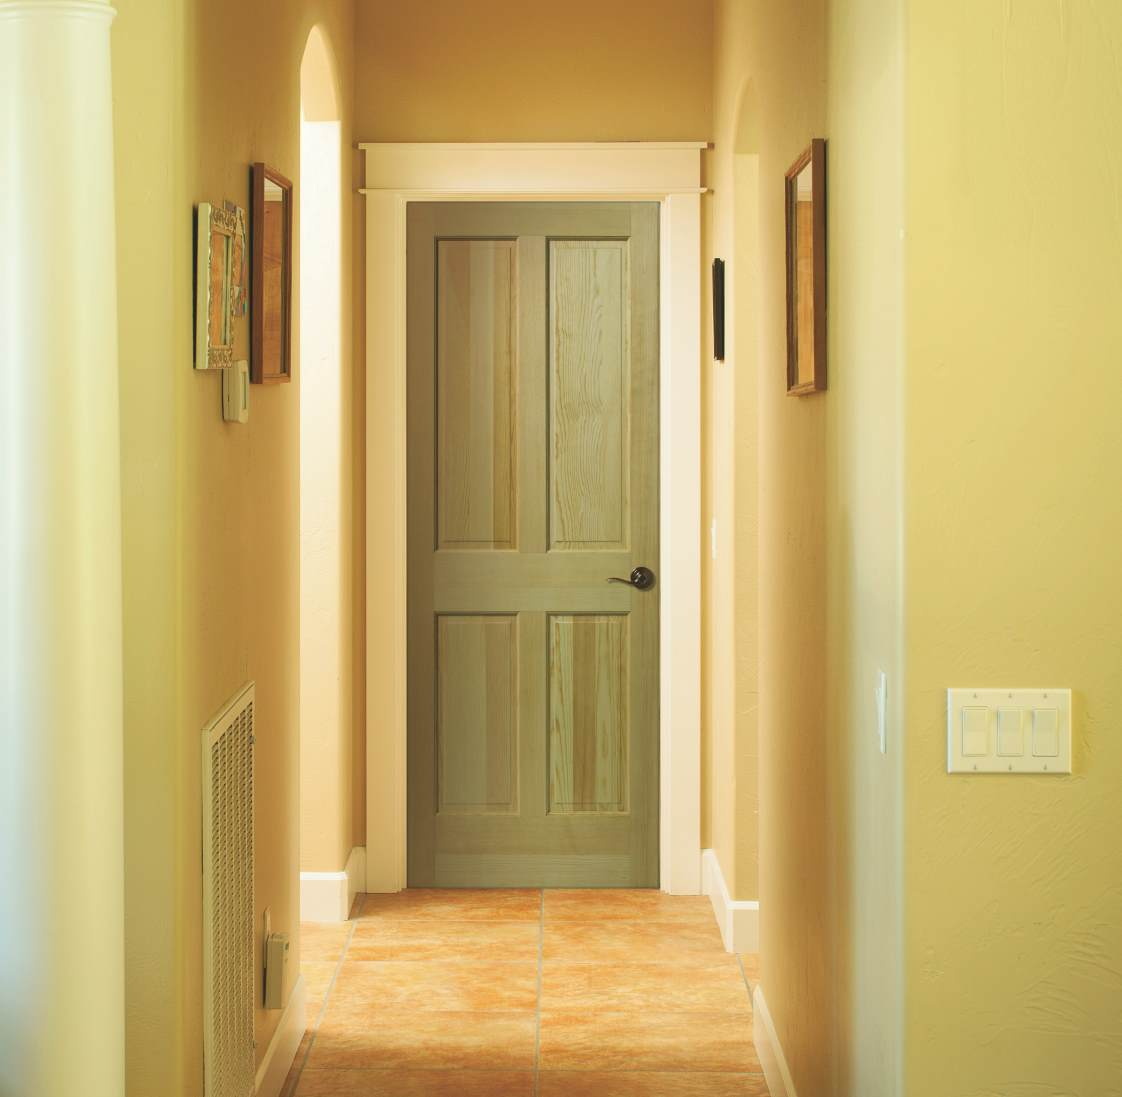 & Page 9 - Reeb Millwork - 2015 Interior Doors